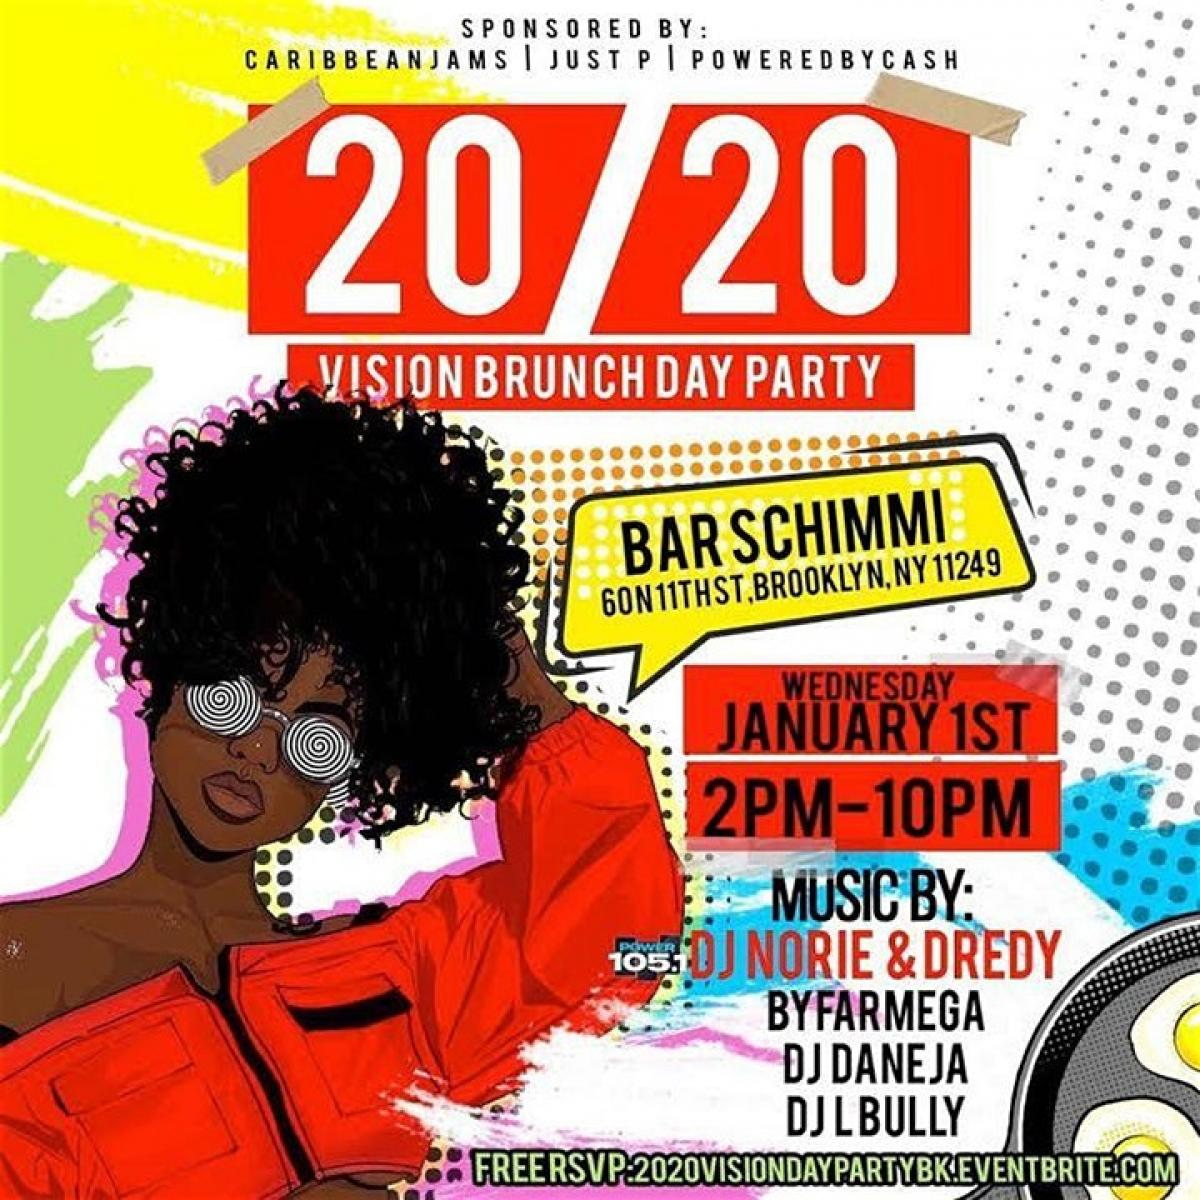 20/20 Vision Day Party flyer or graphic.